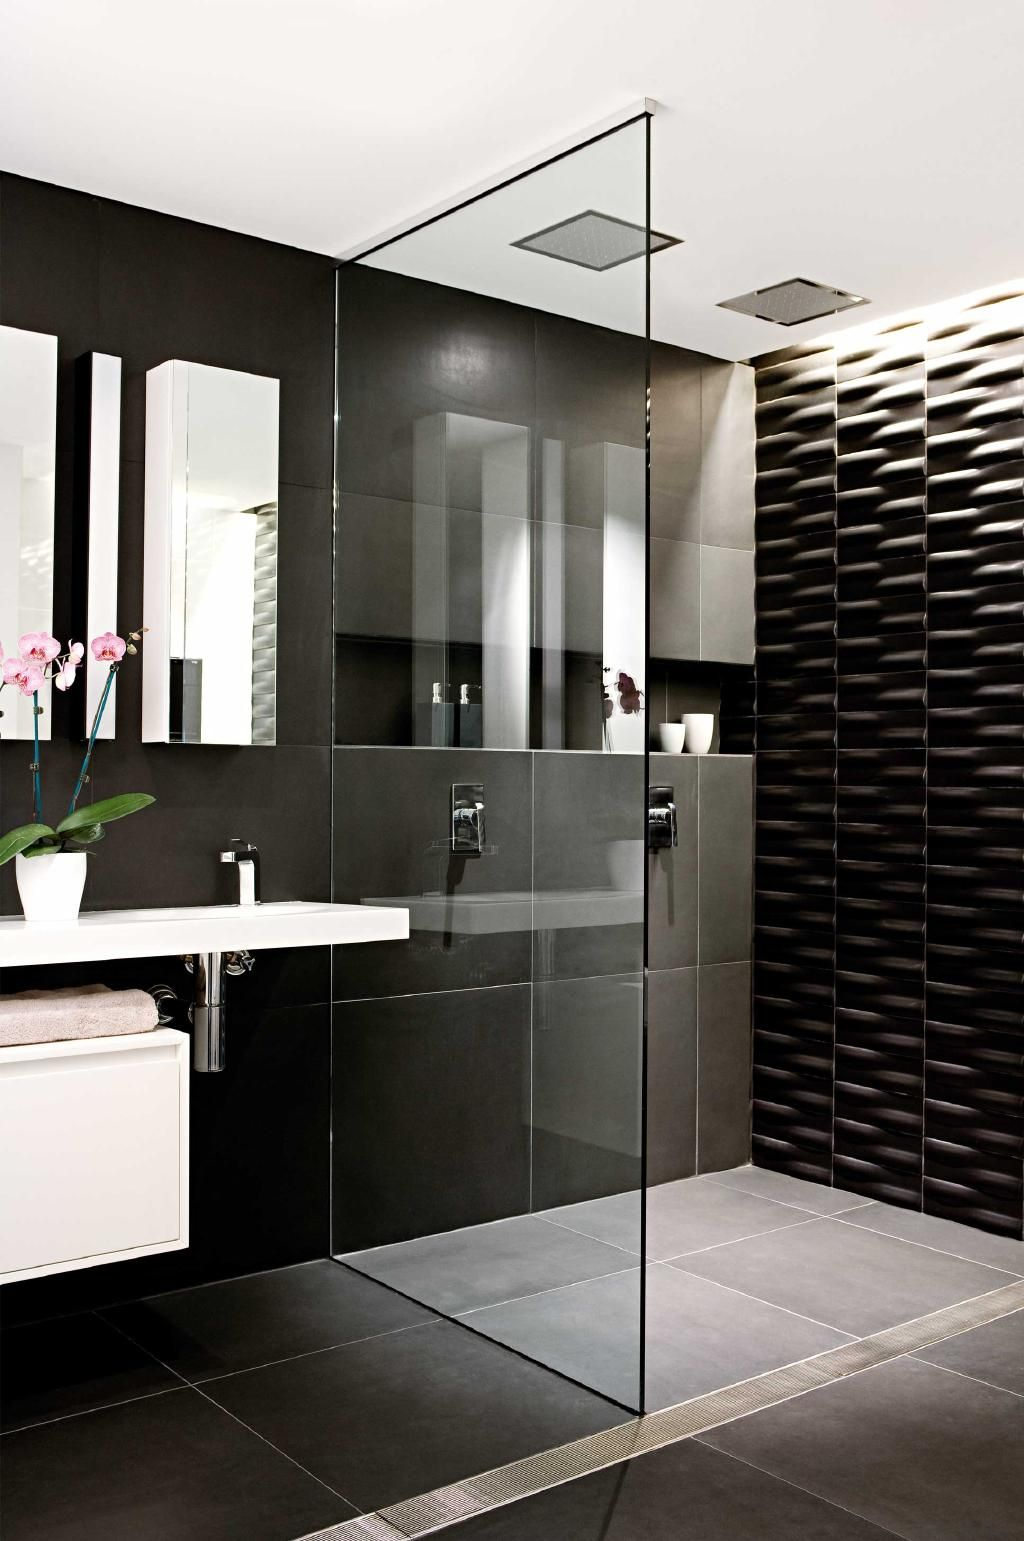 Get bathroom inspiration from these black and white pamper zones ...